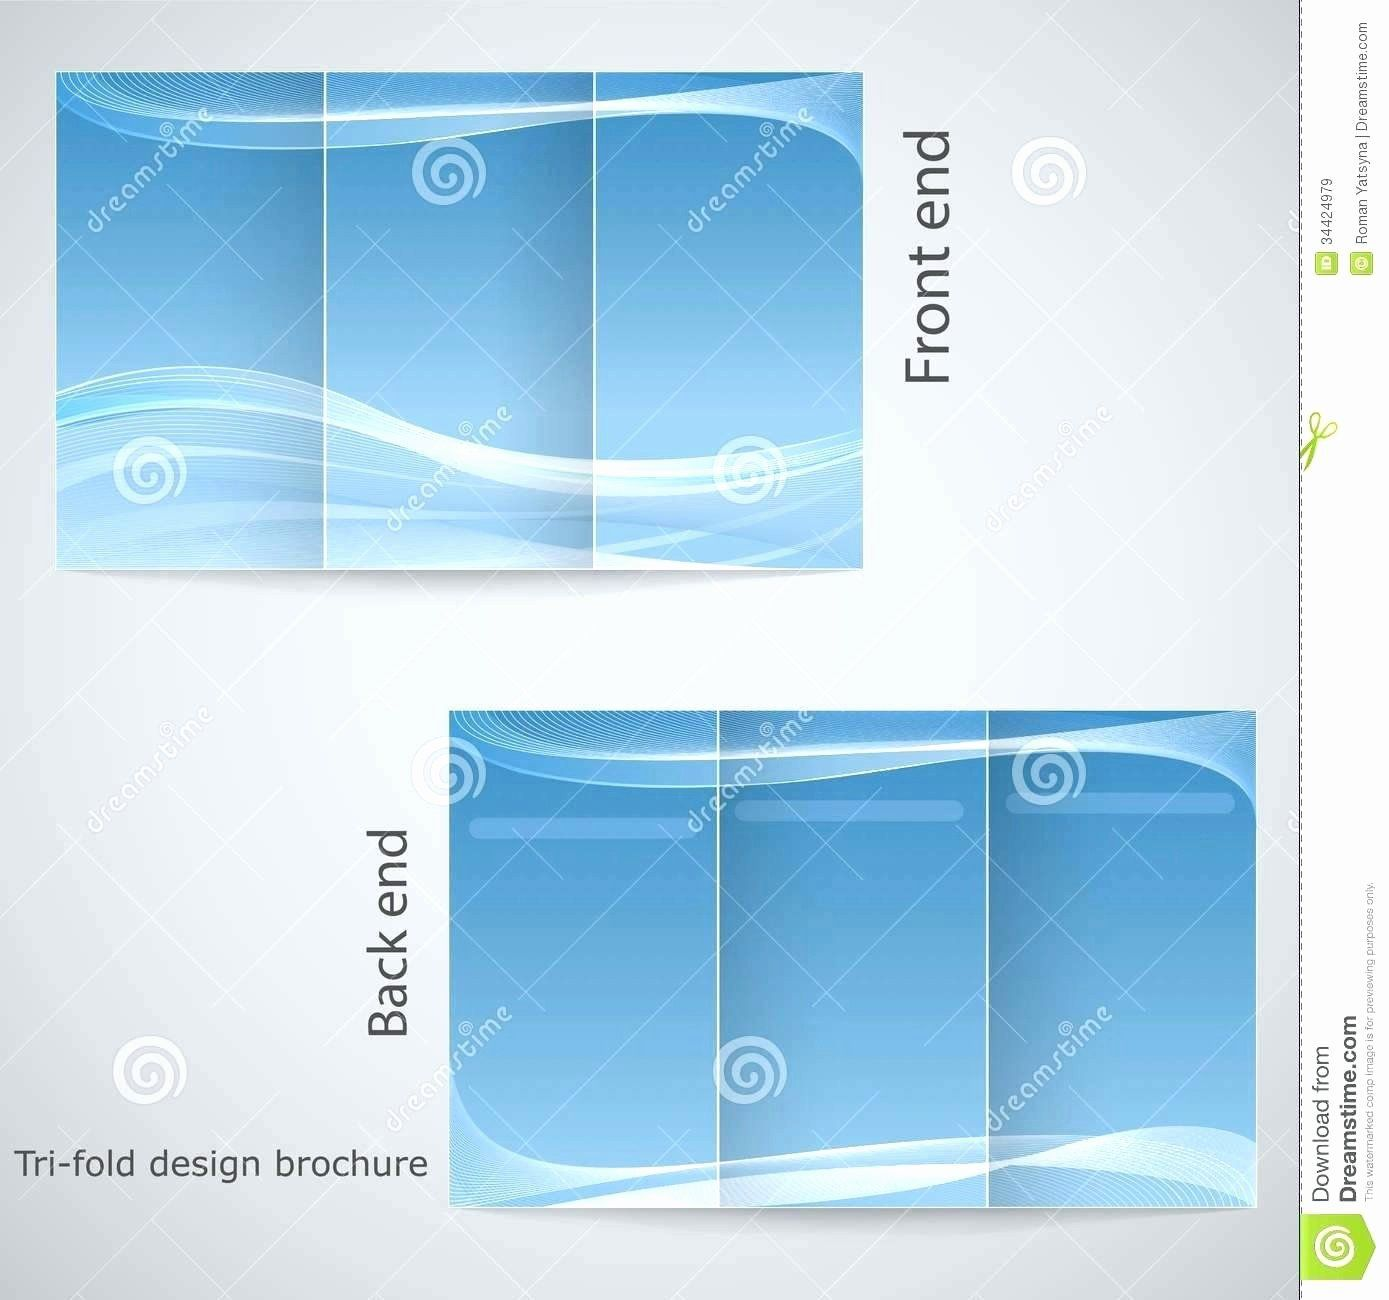 001 Shocking M Word Blank Brochure Template High Def  Microsoft Tri FoldFull